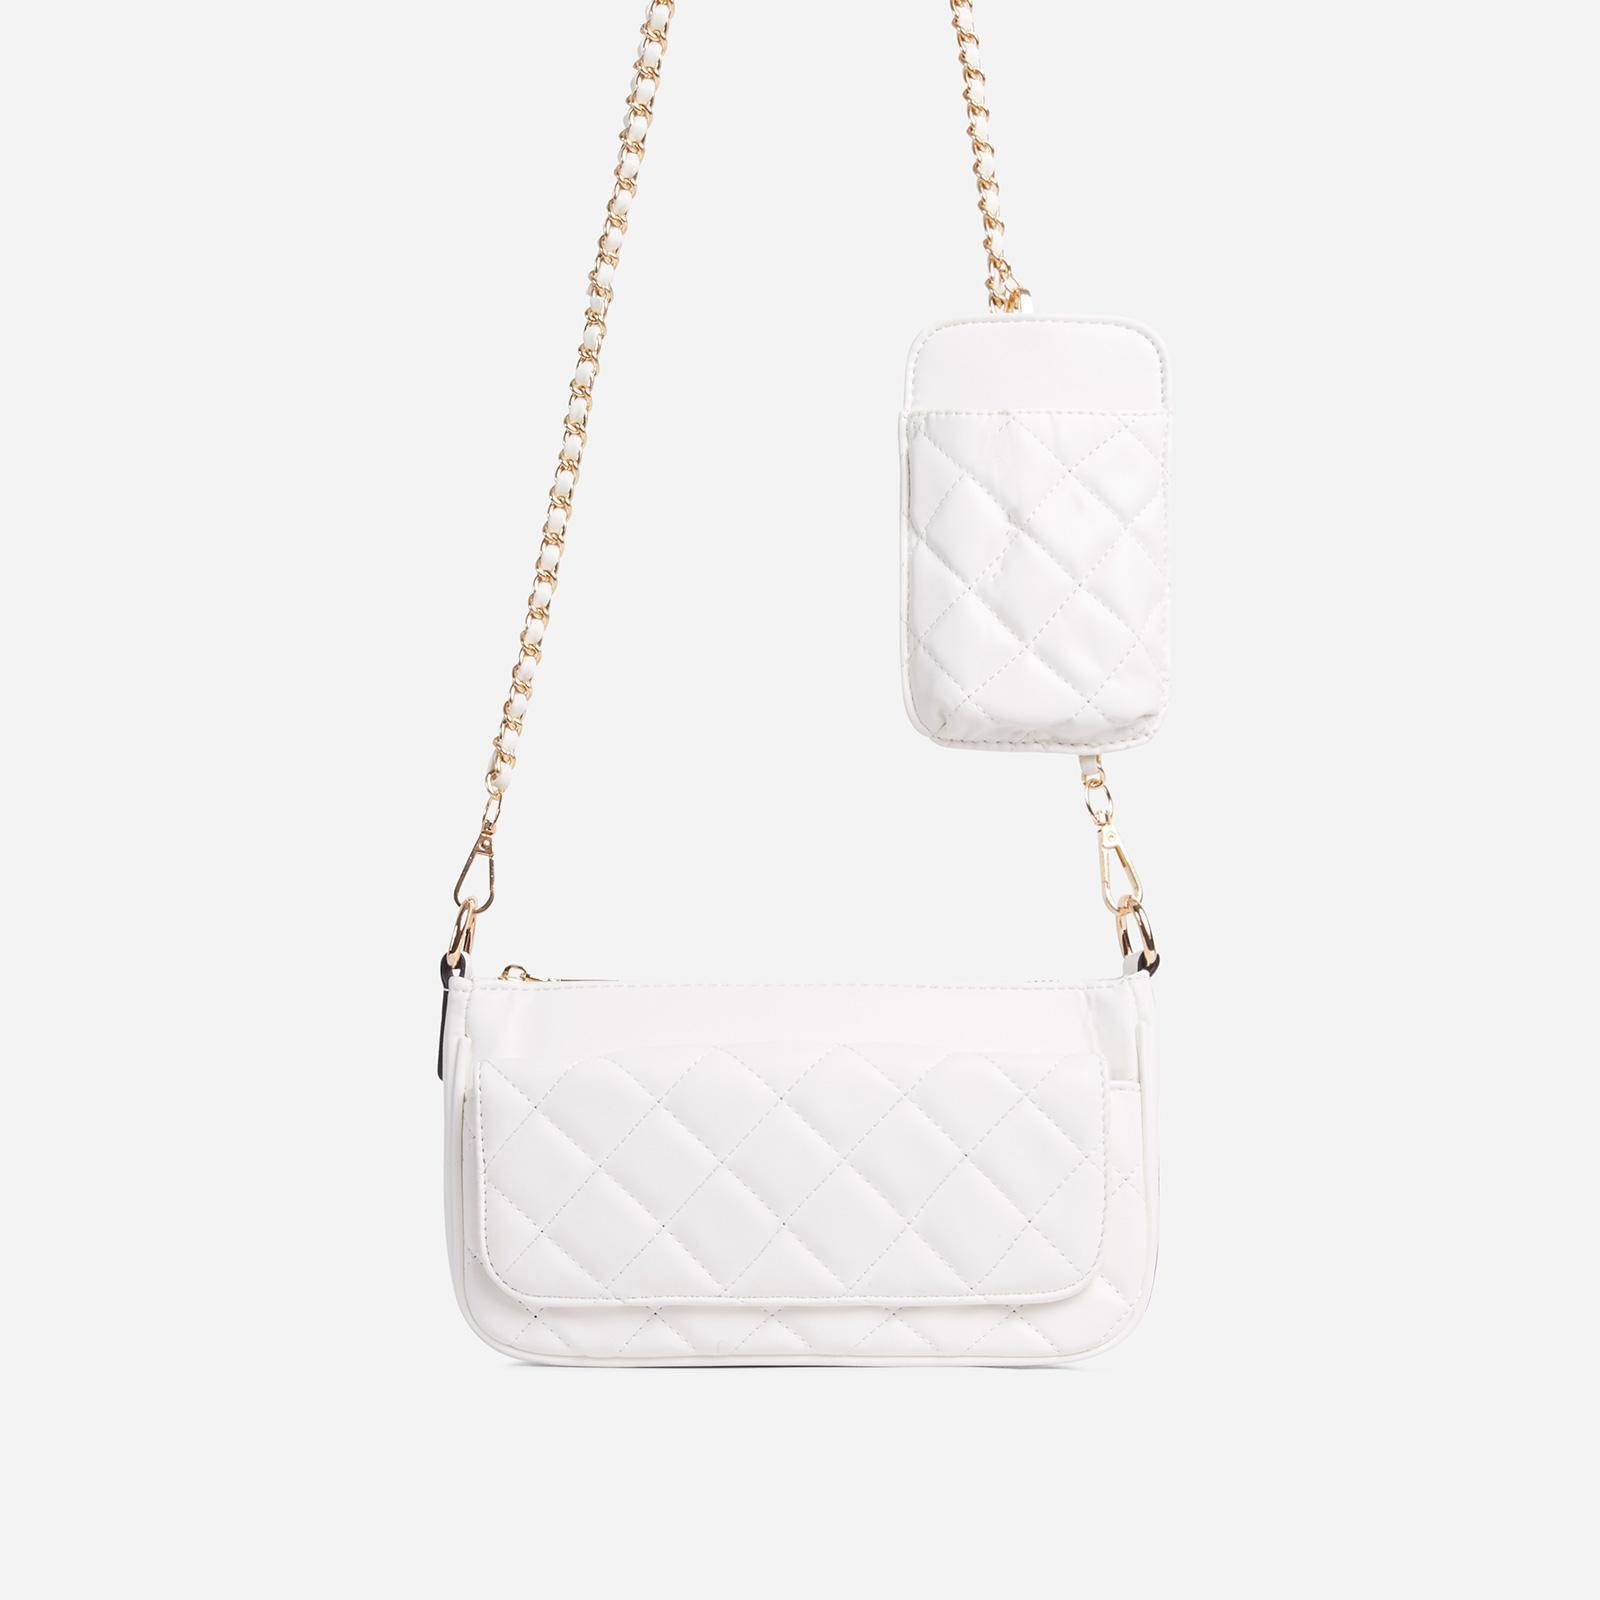 EGO Ryan Phone Pocket Pouch Quilted Cross Body Bag In White Faux Leather, White  - female - Size: One Size